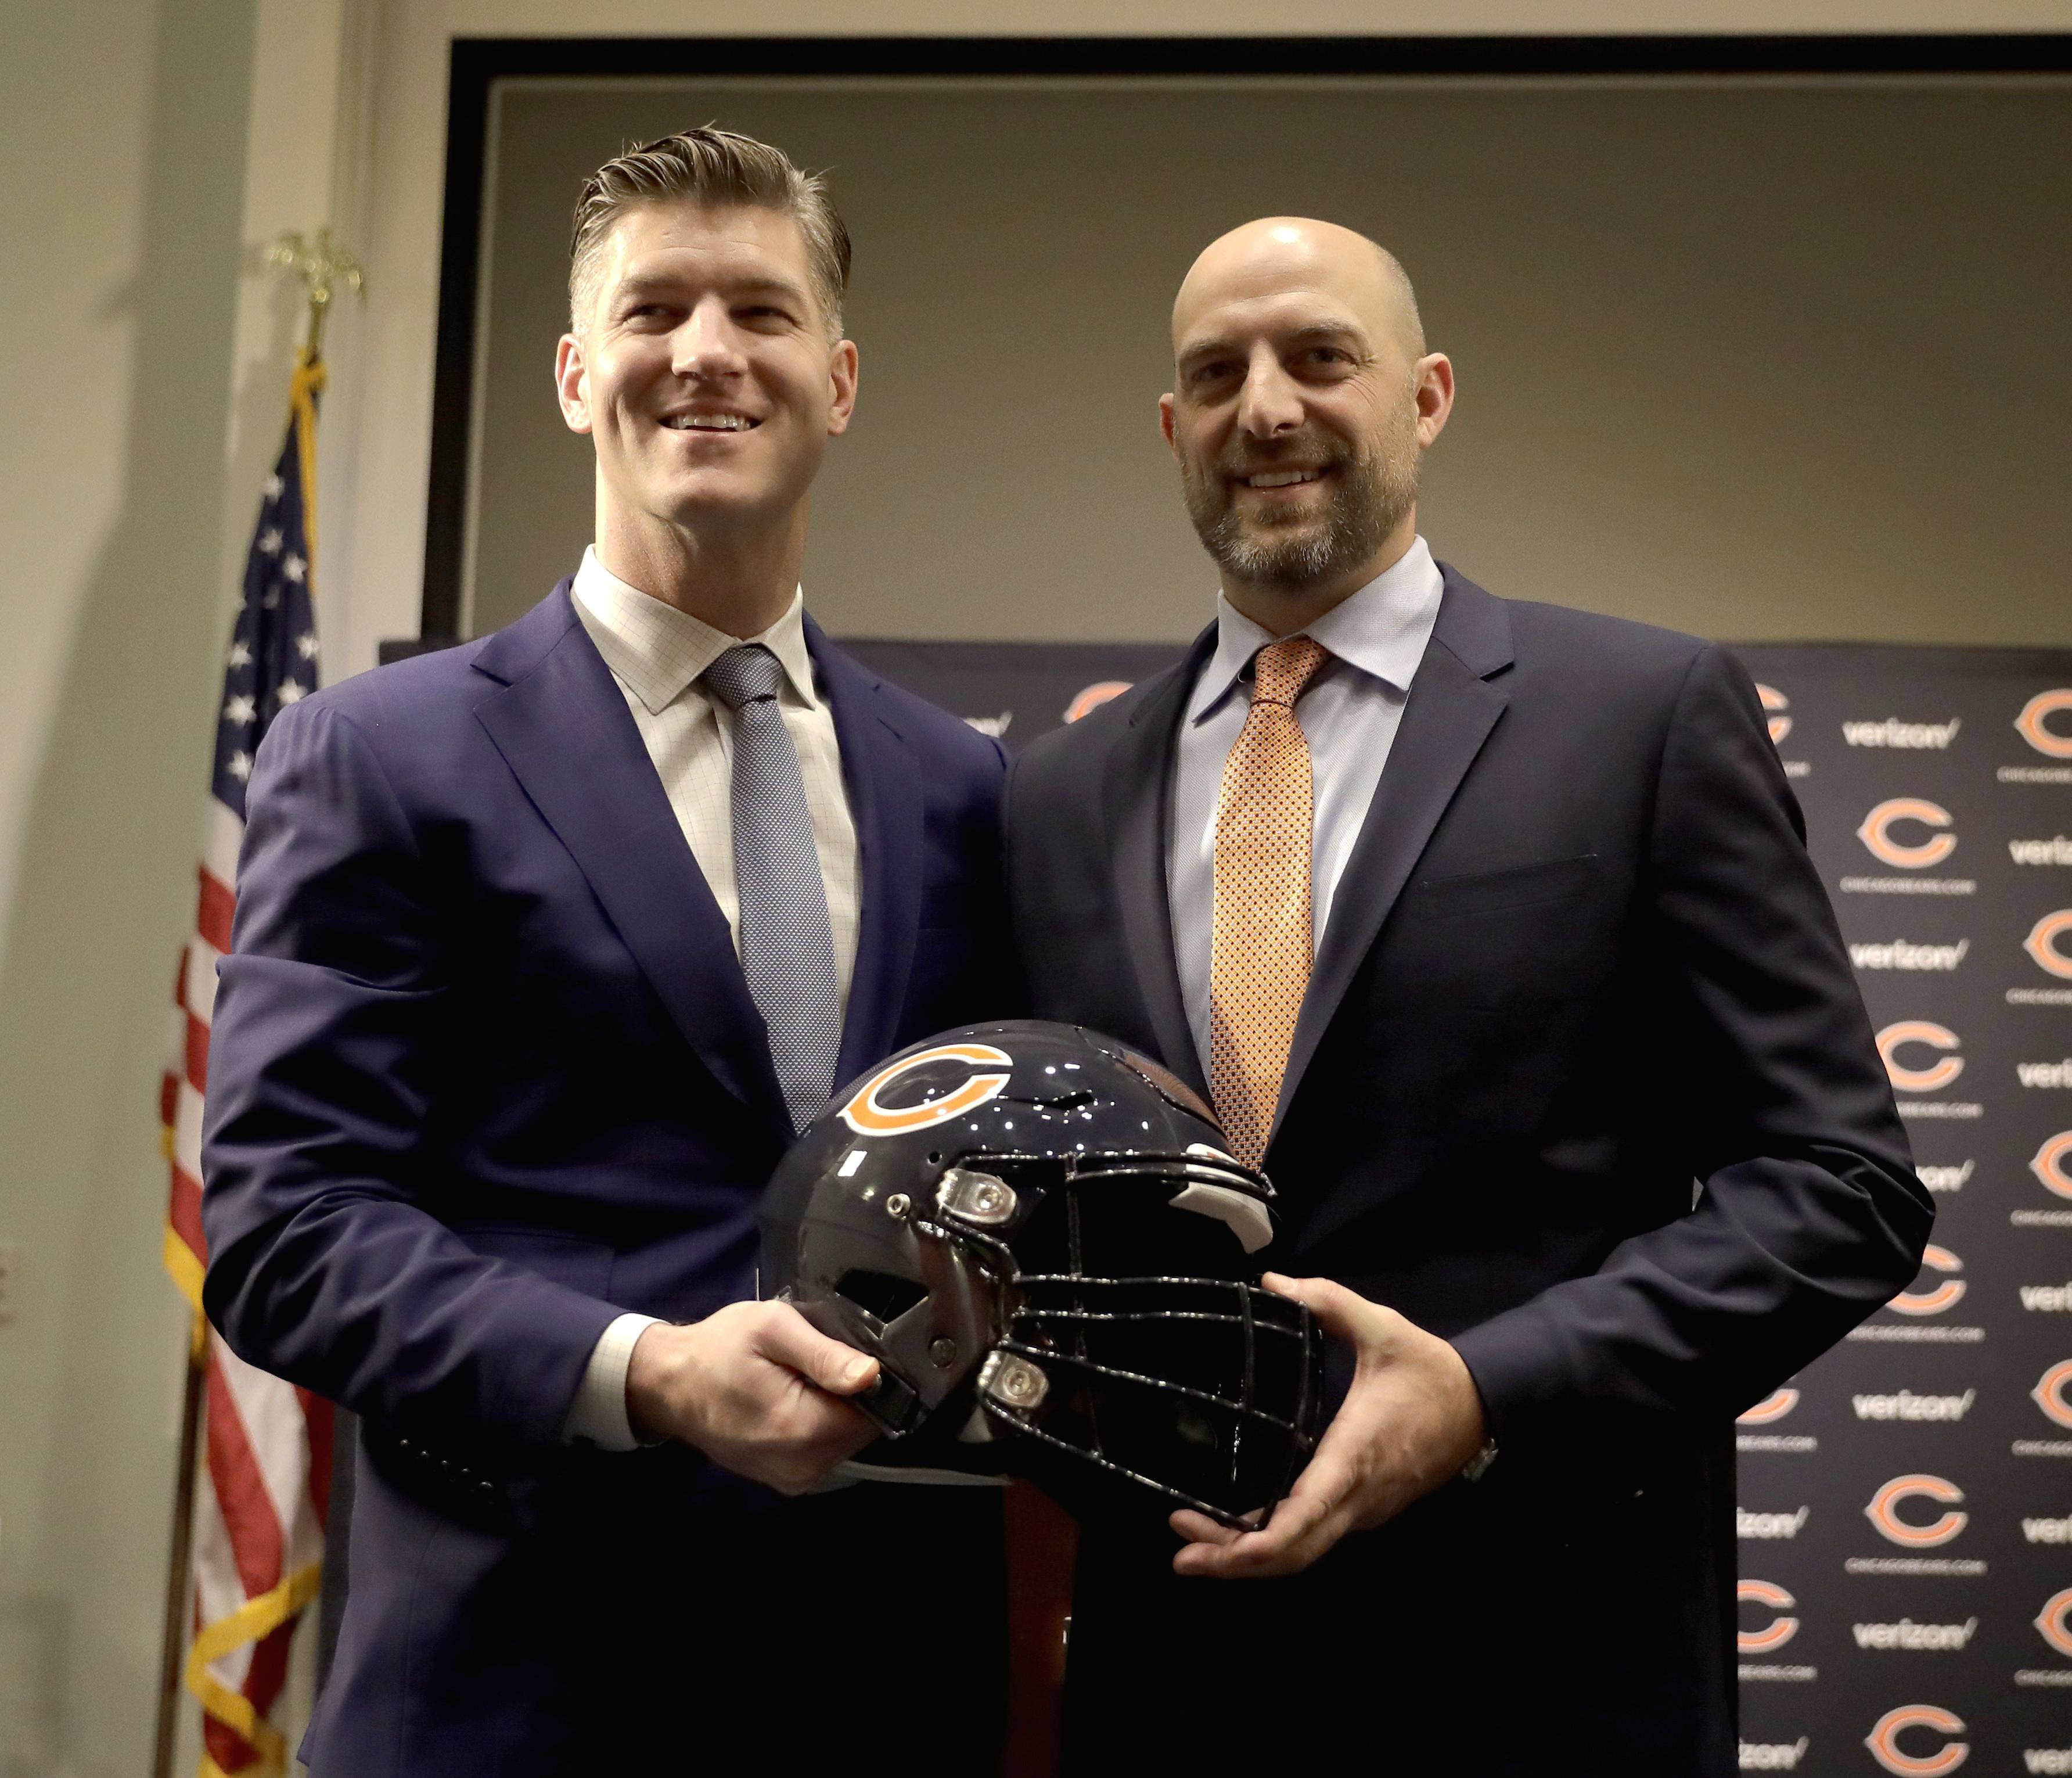 Bears GM quickly finds common ground with new head coach